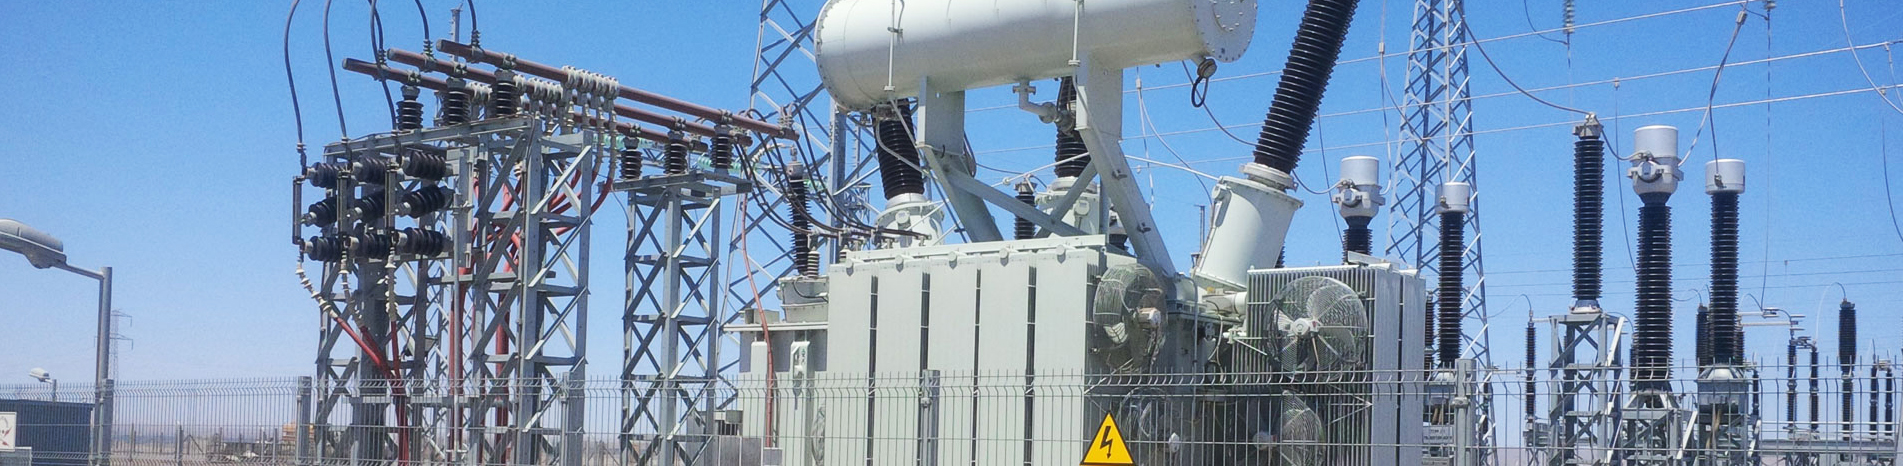 MET Power transformer repairs and services